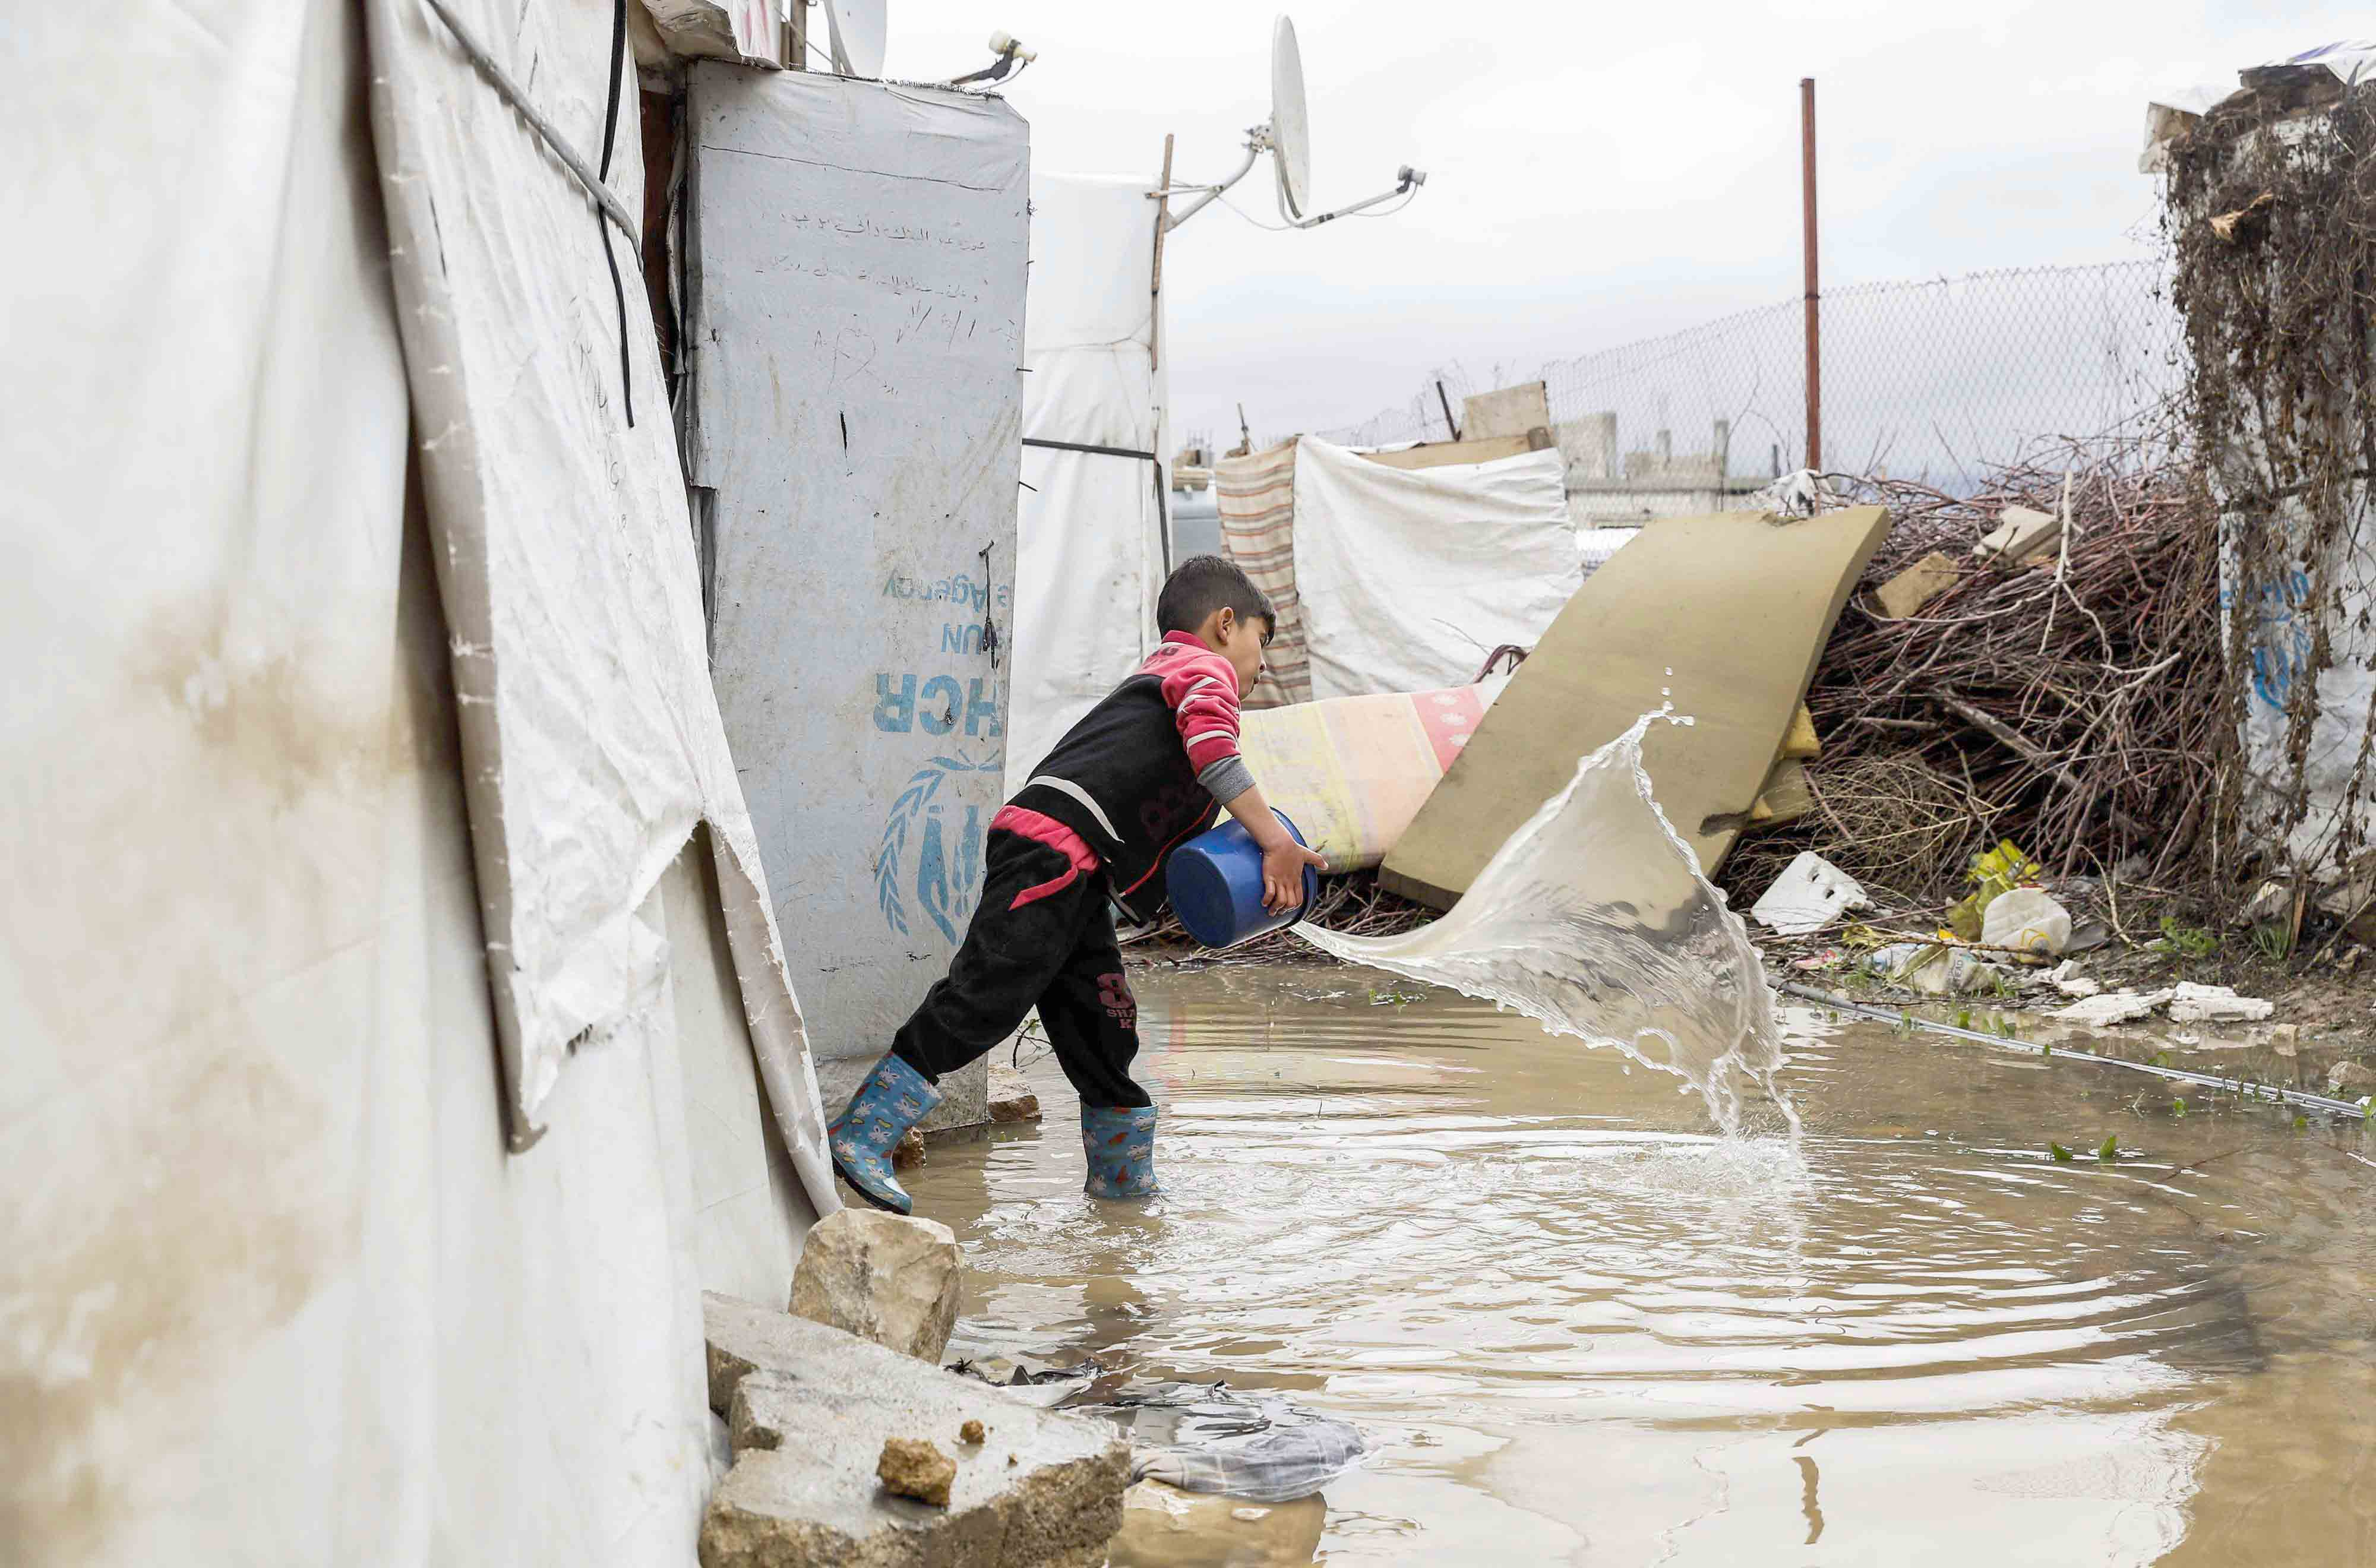 A Syrian child uses a bucket to bale out water from his tent in Lebanon's Bekaa Valley. (AFP)